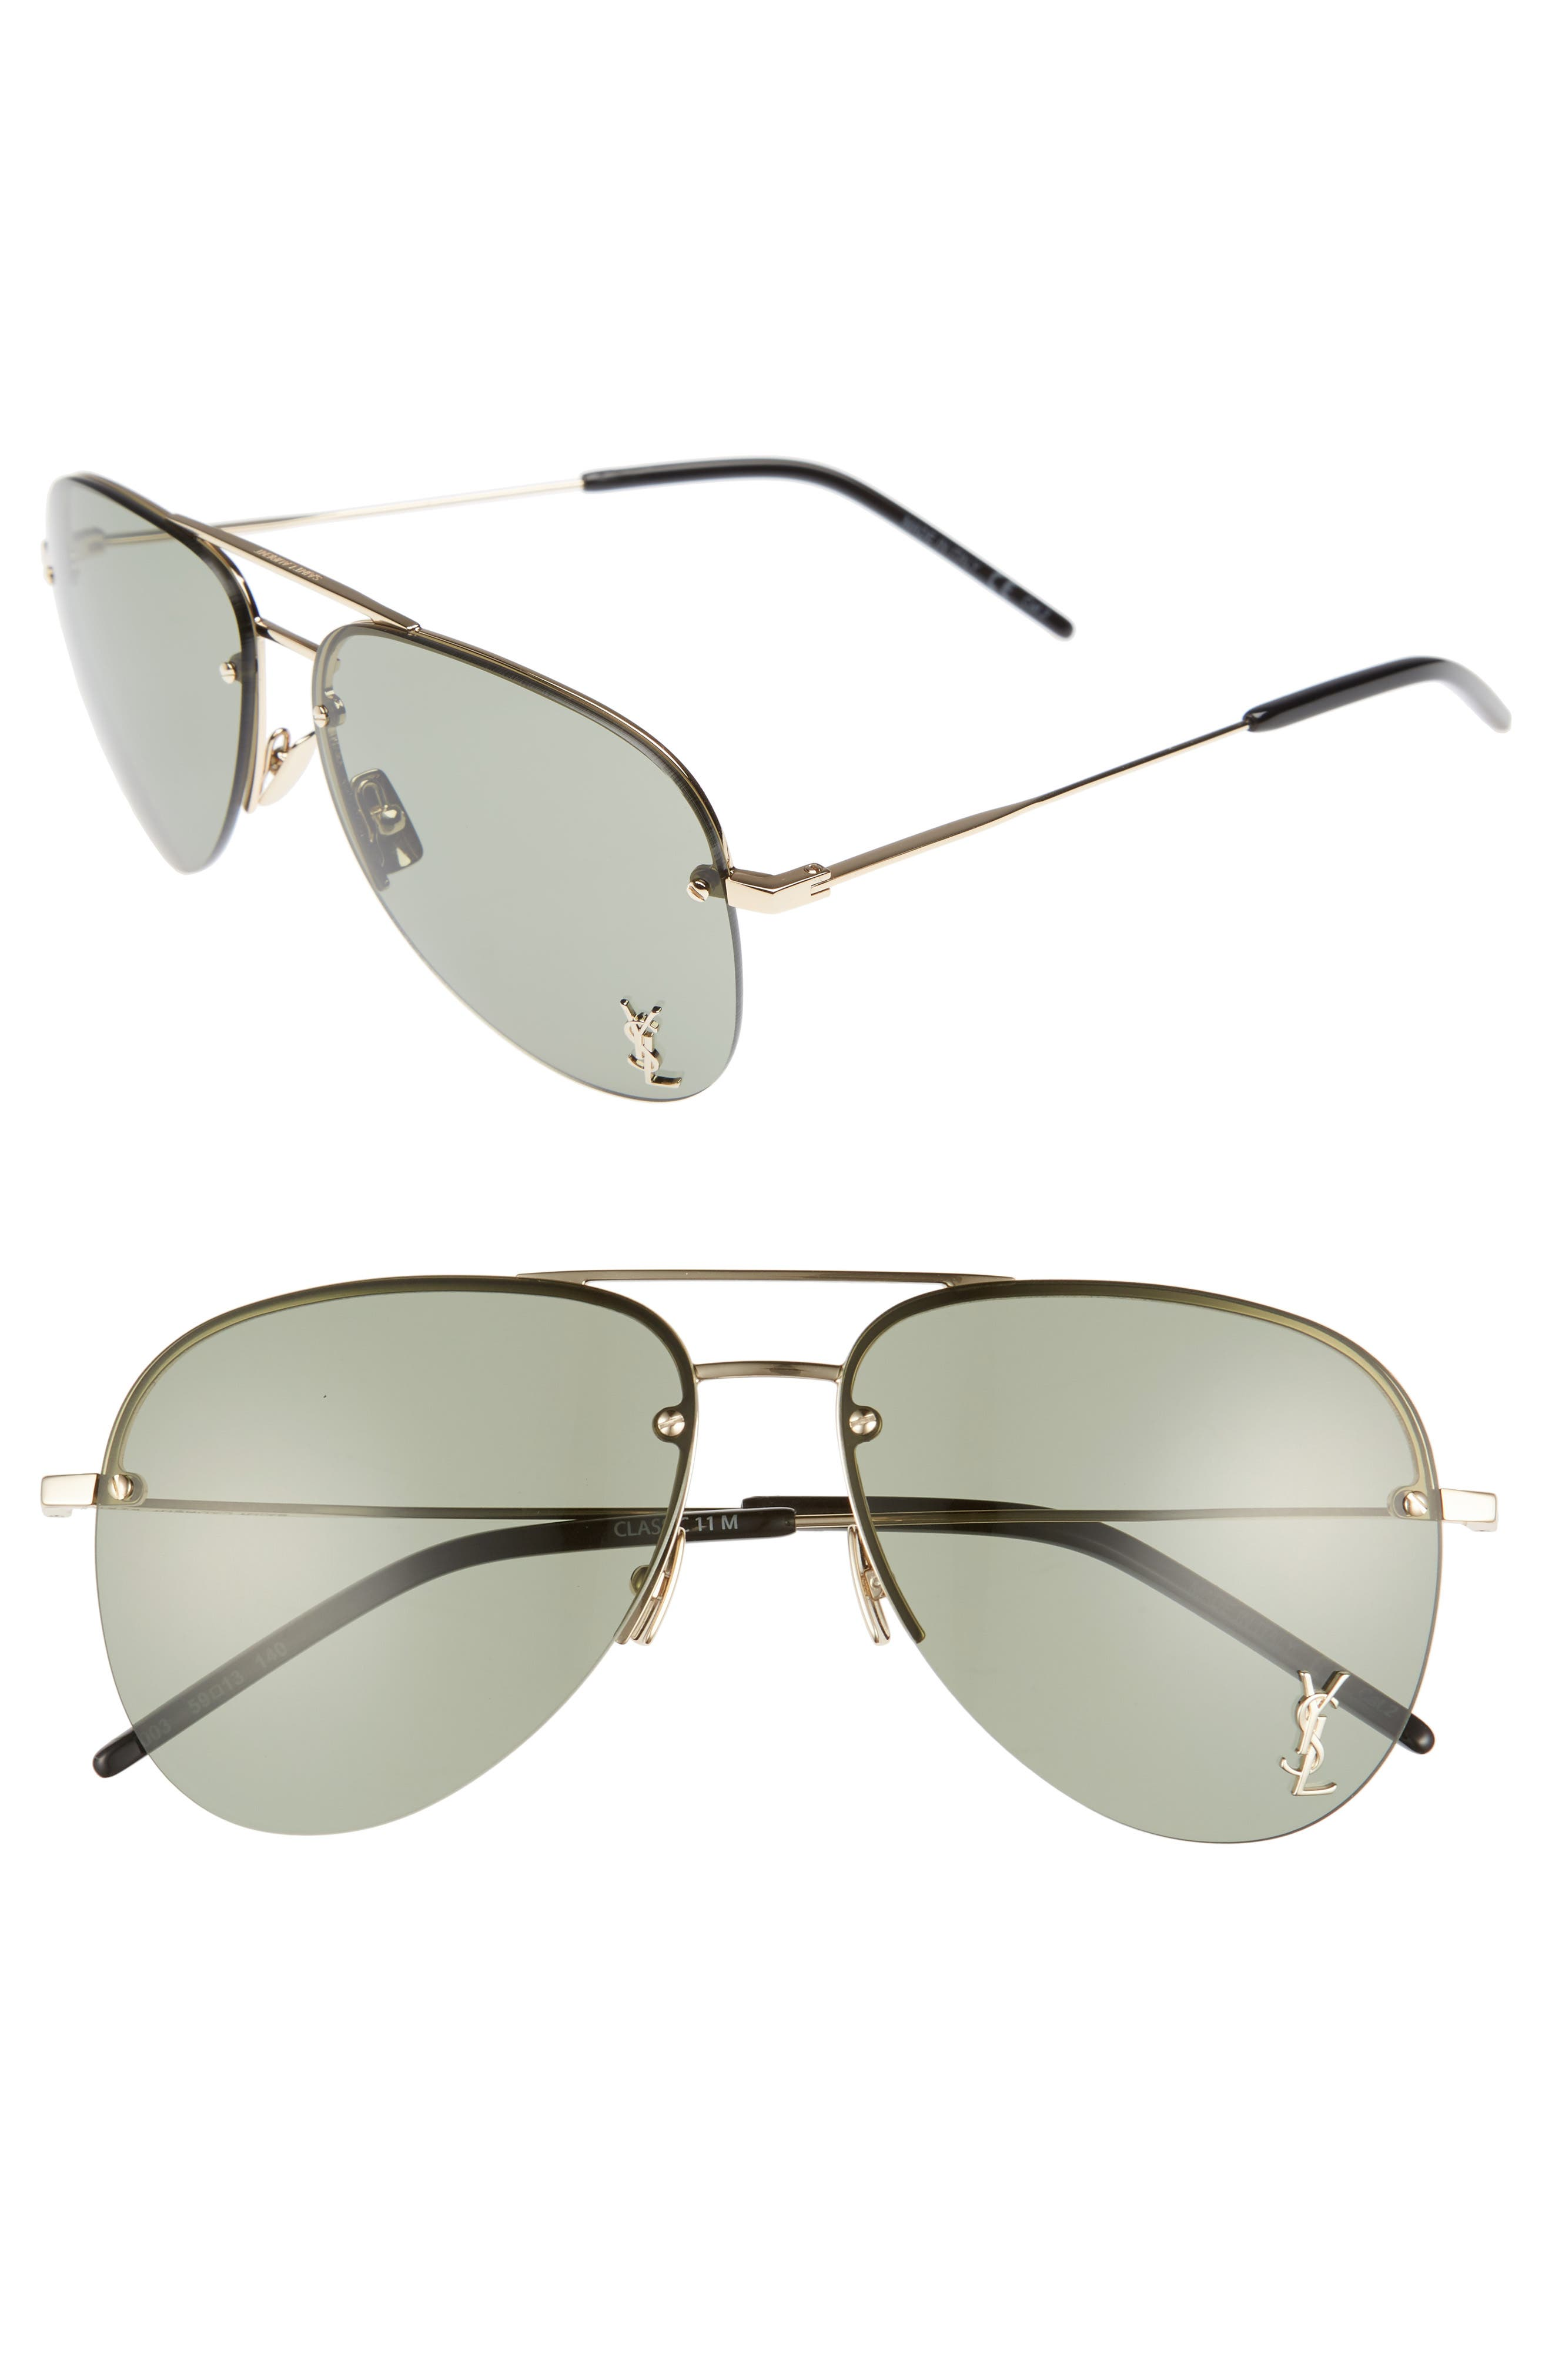 Saint Laurent 5m Aviator Sunglasses -